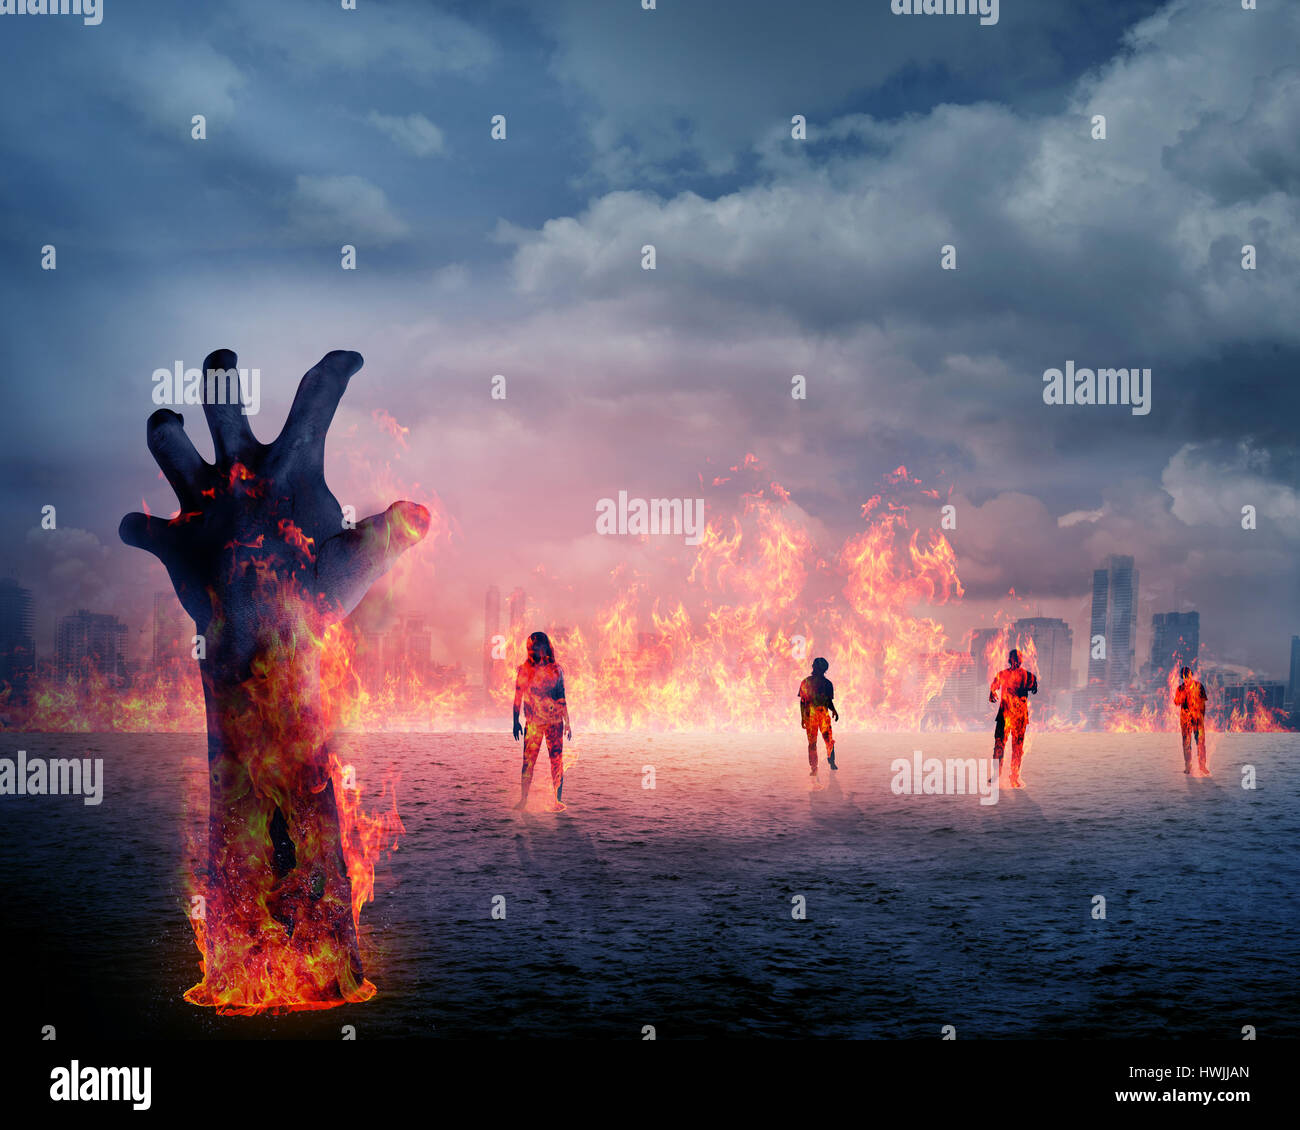 Spiritual Apocalypse Monstrosity: Zombie Hand With Fire Rising From The Ground. Halloween